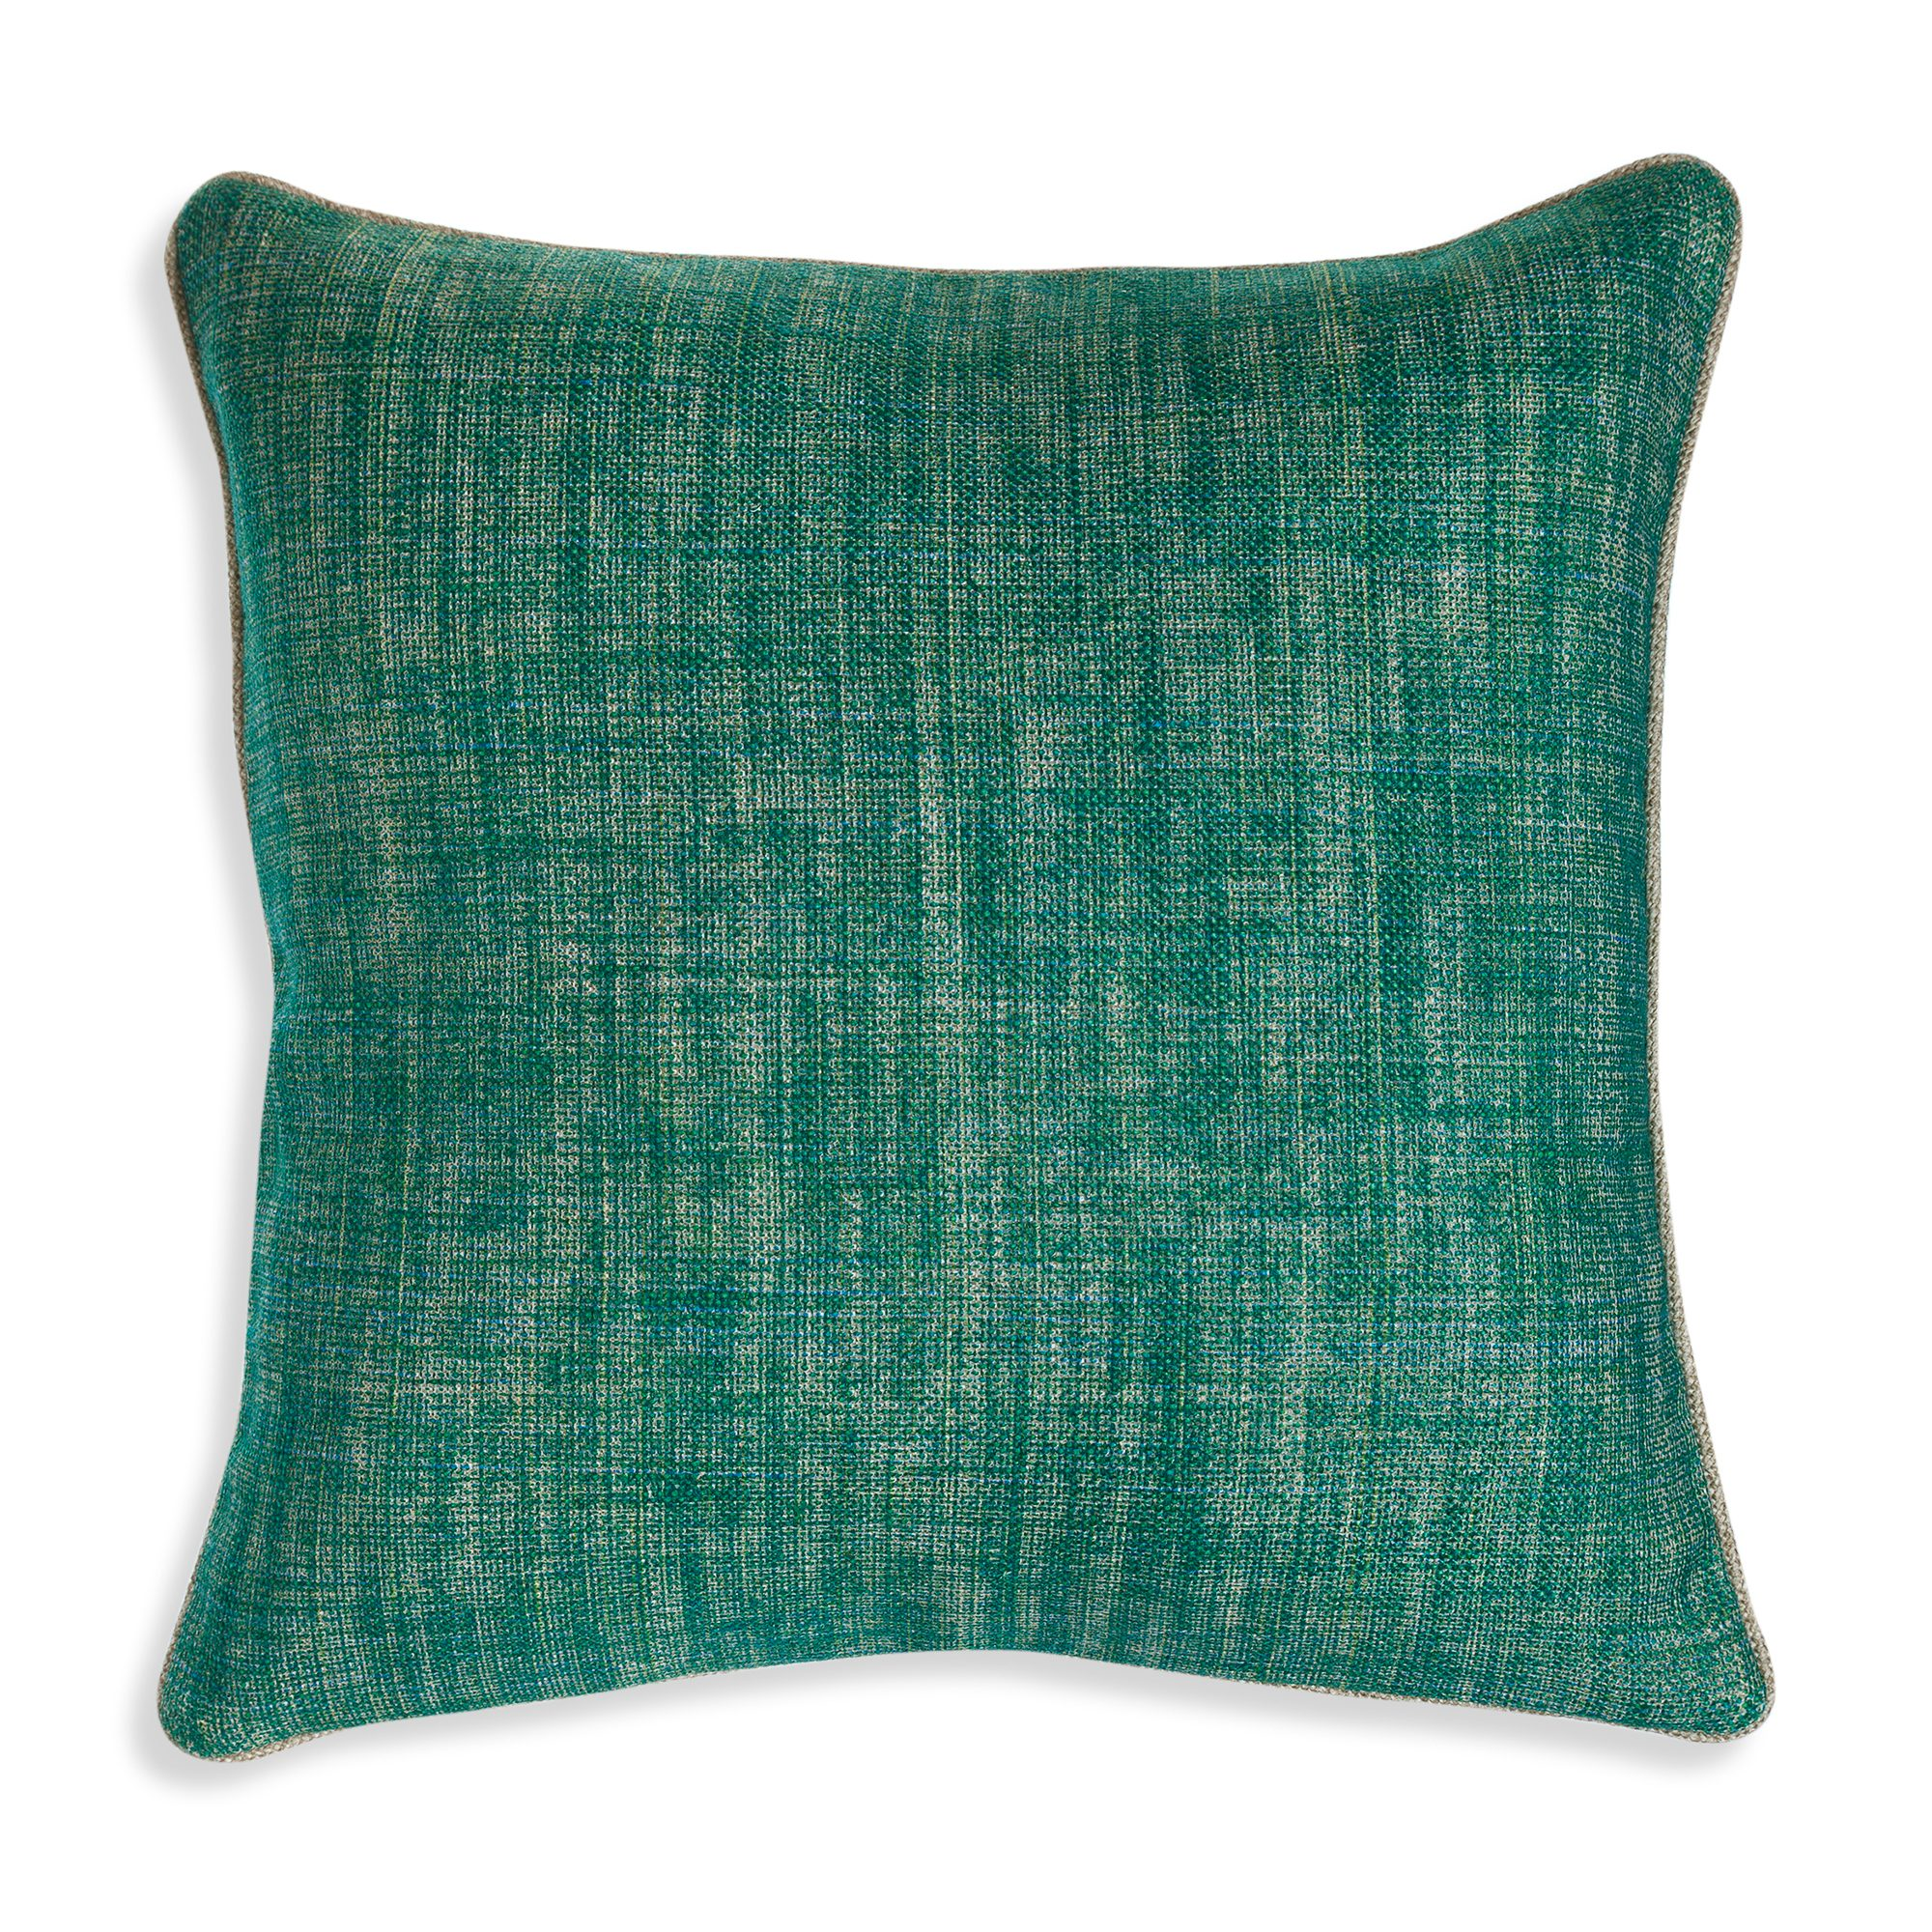 Small Square Cushion in Aventurine